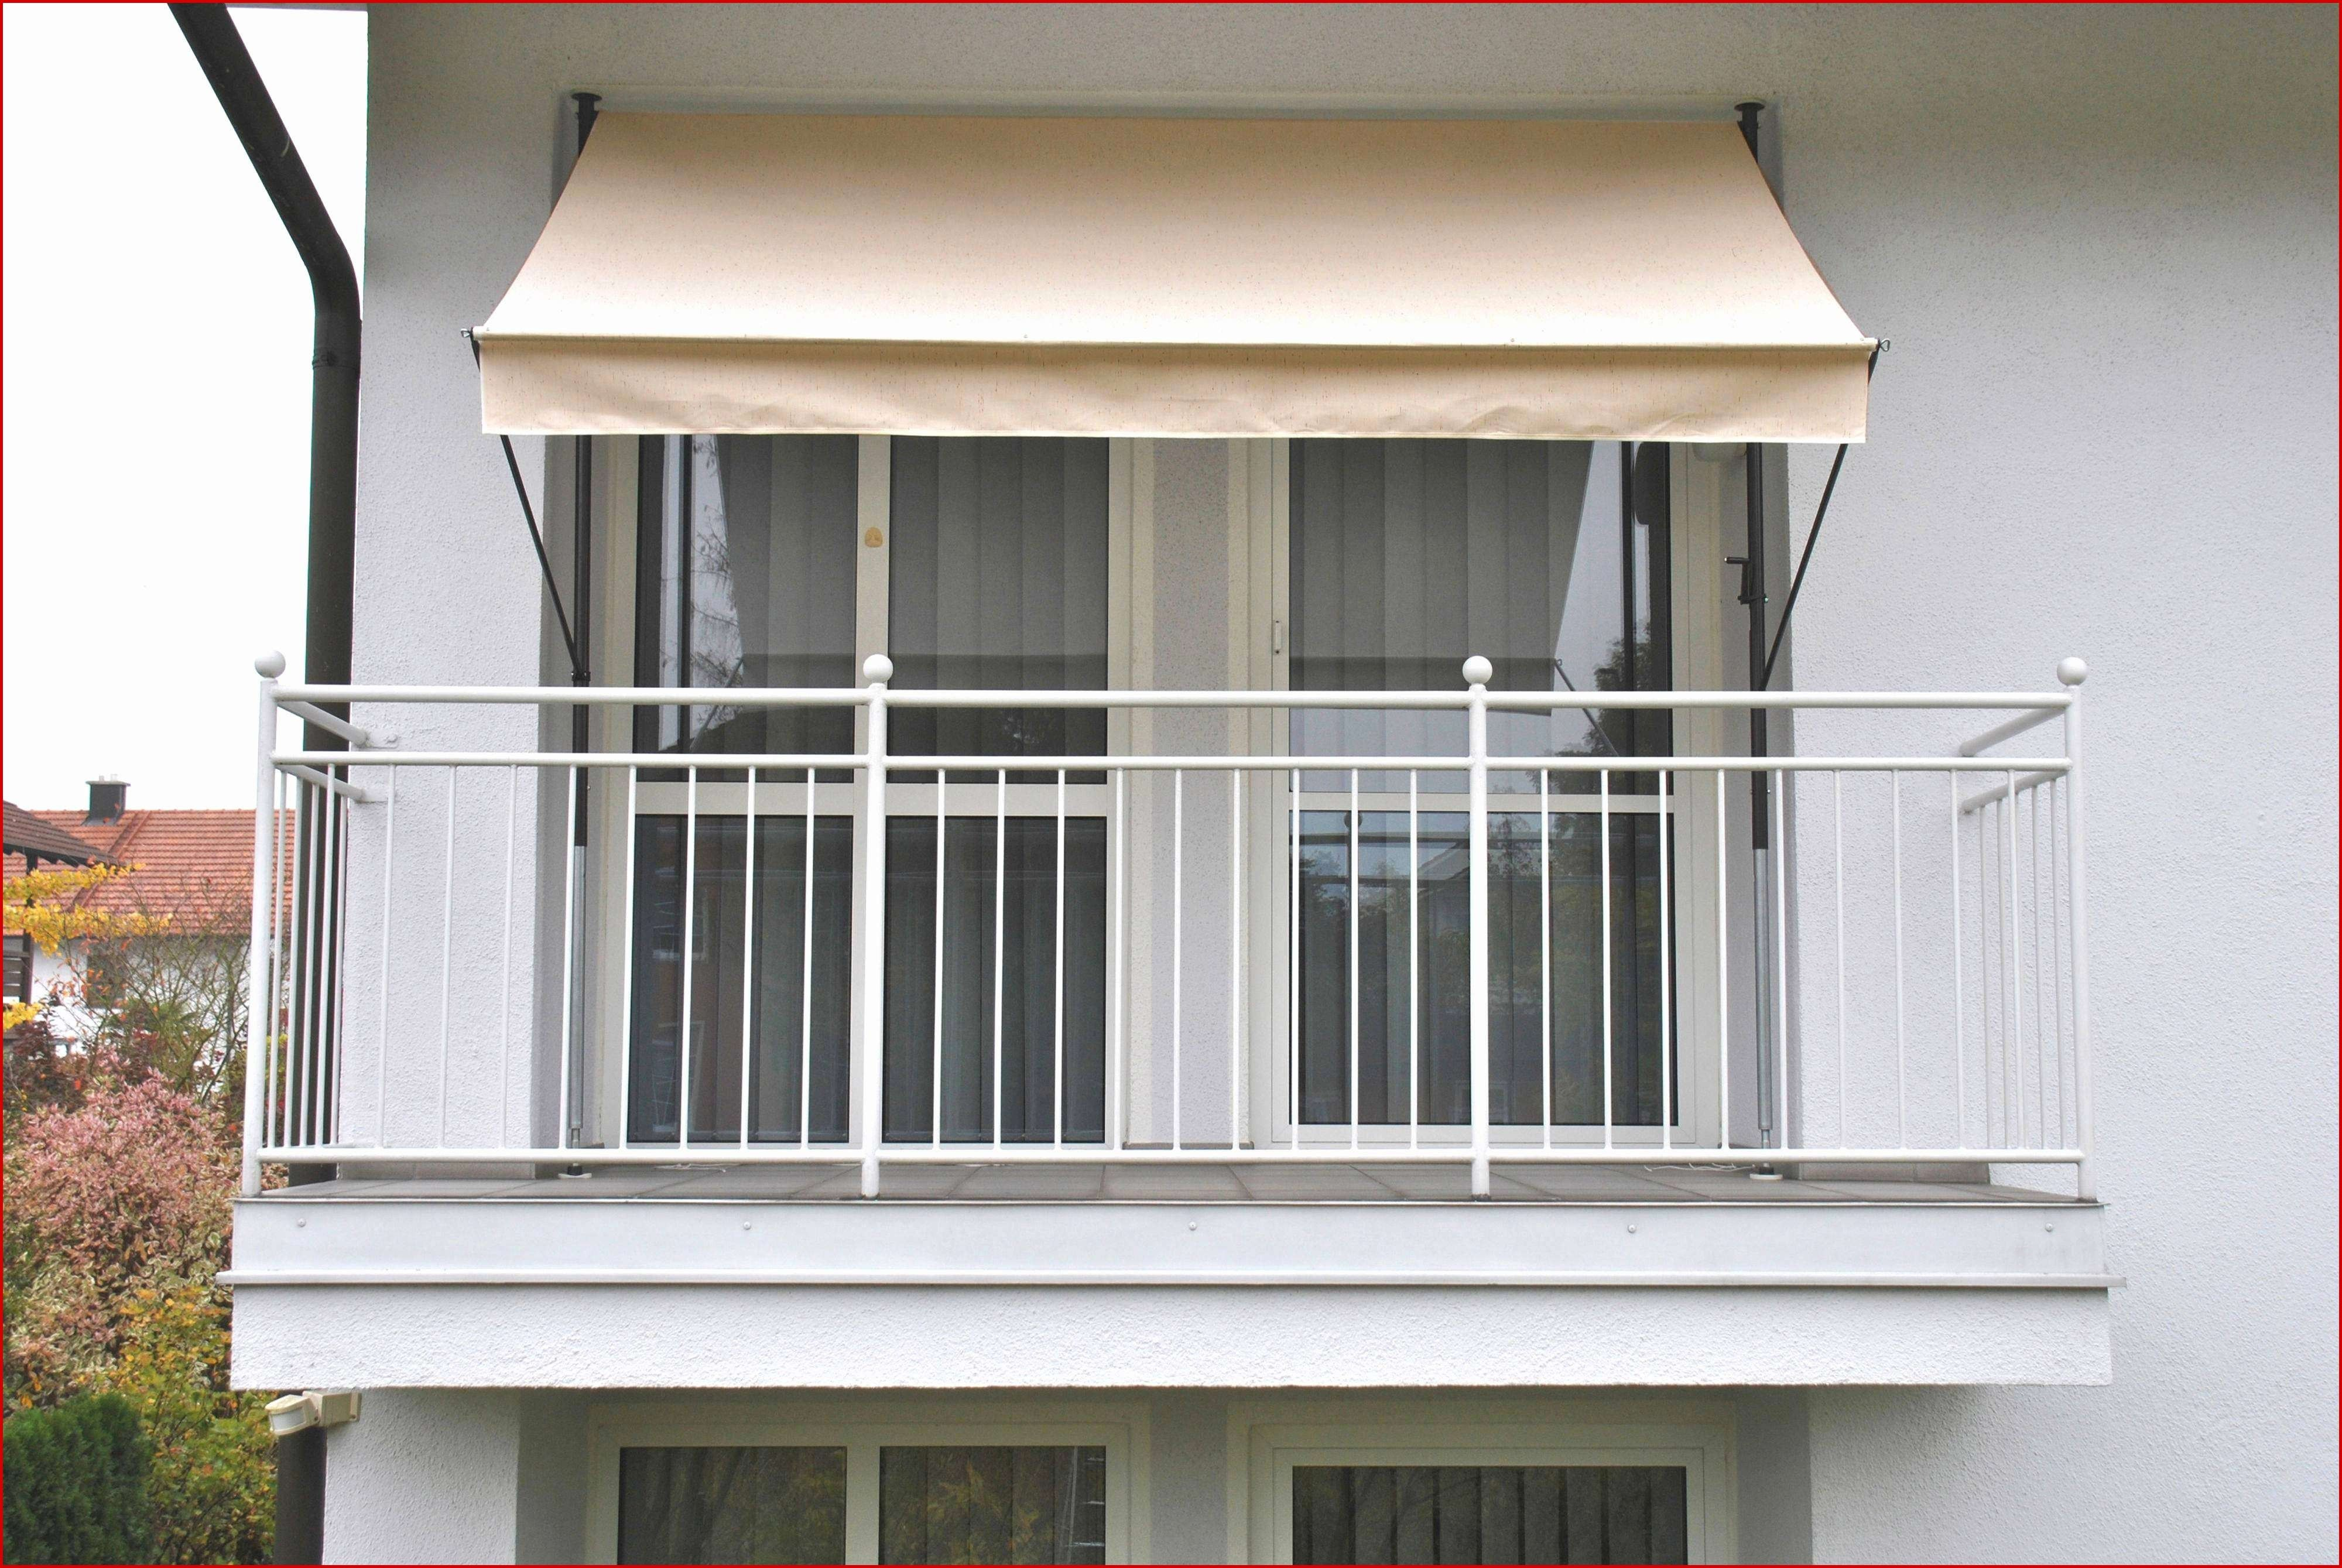 No. 44 Building Regulations Juliet Balcony,Balustrades,Railings HIGH QUALITY